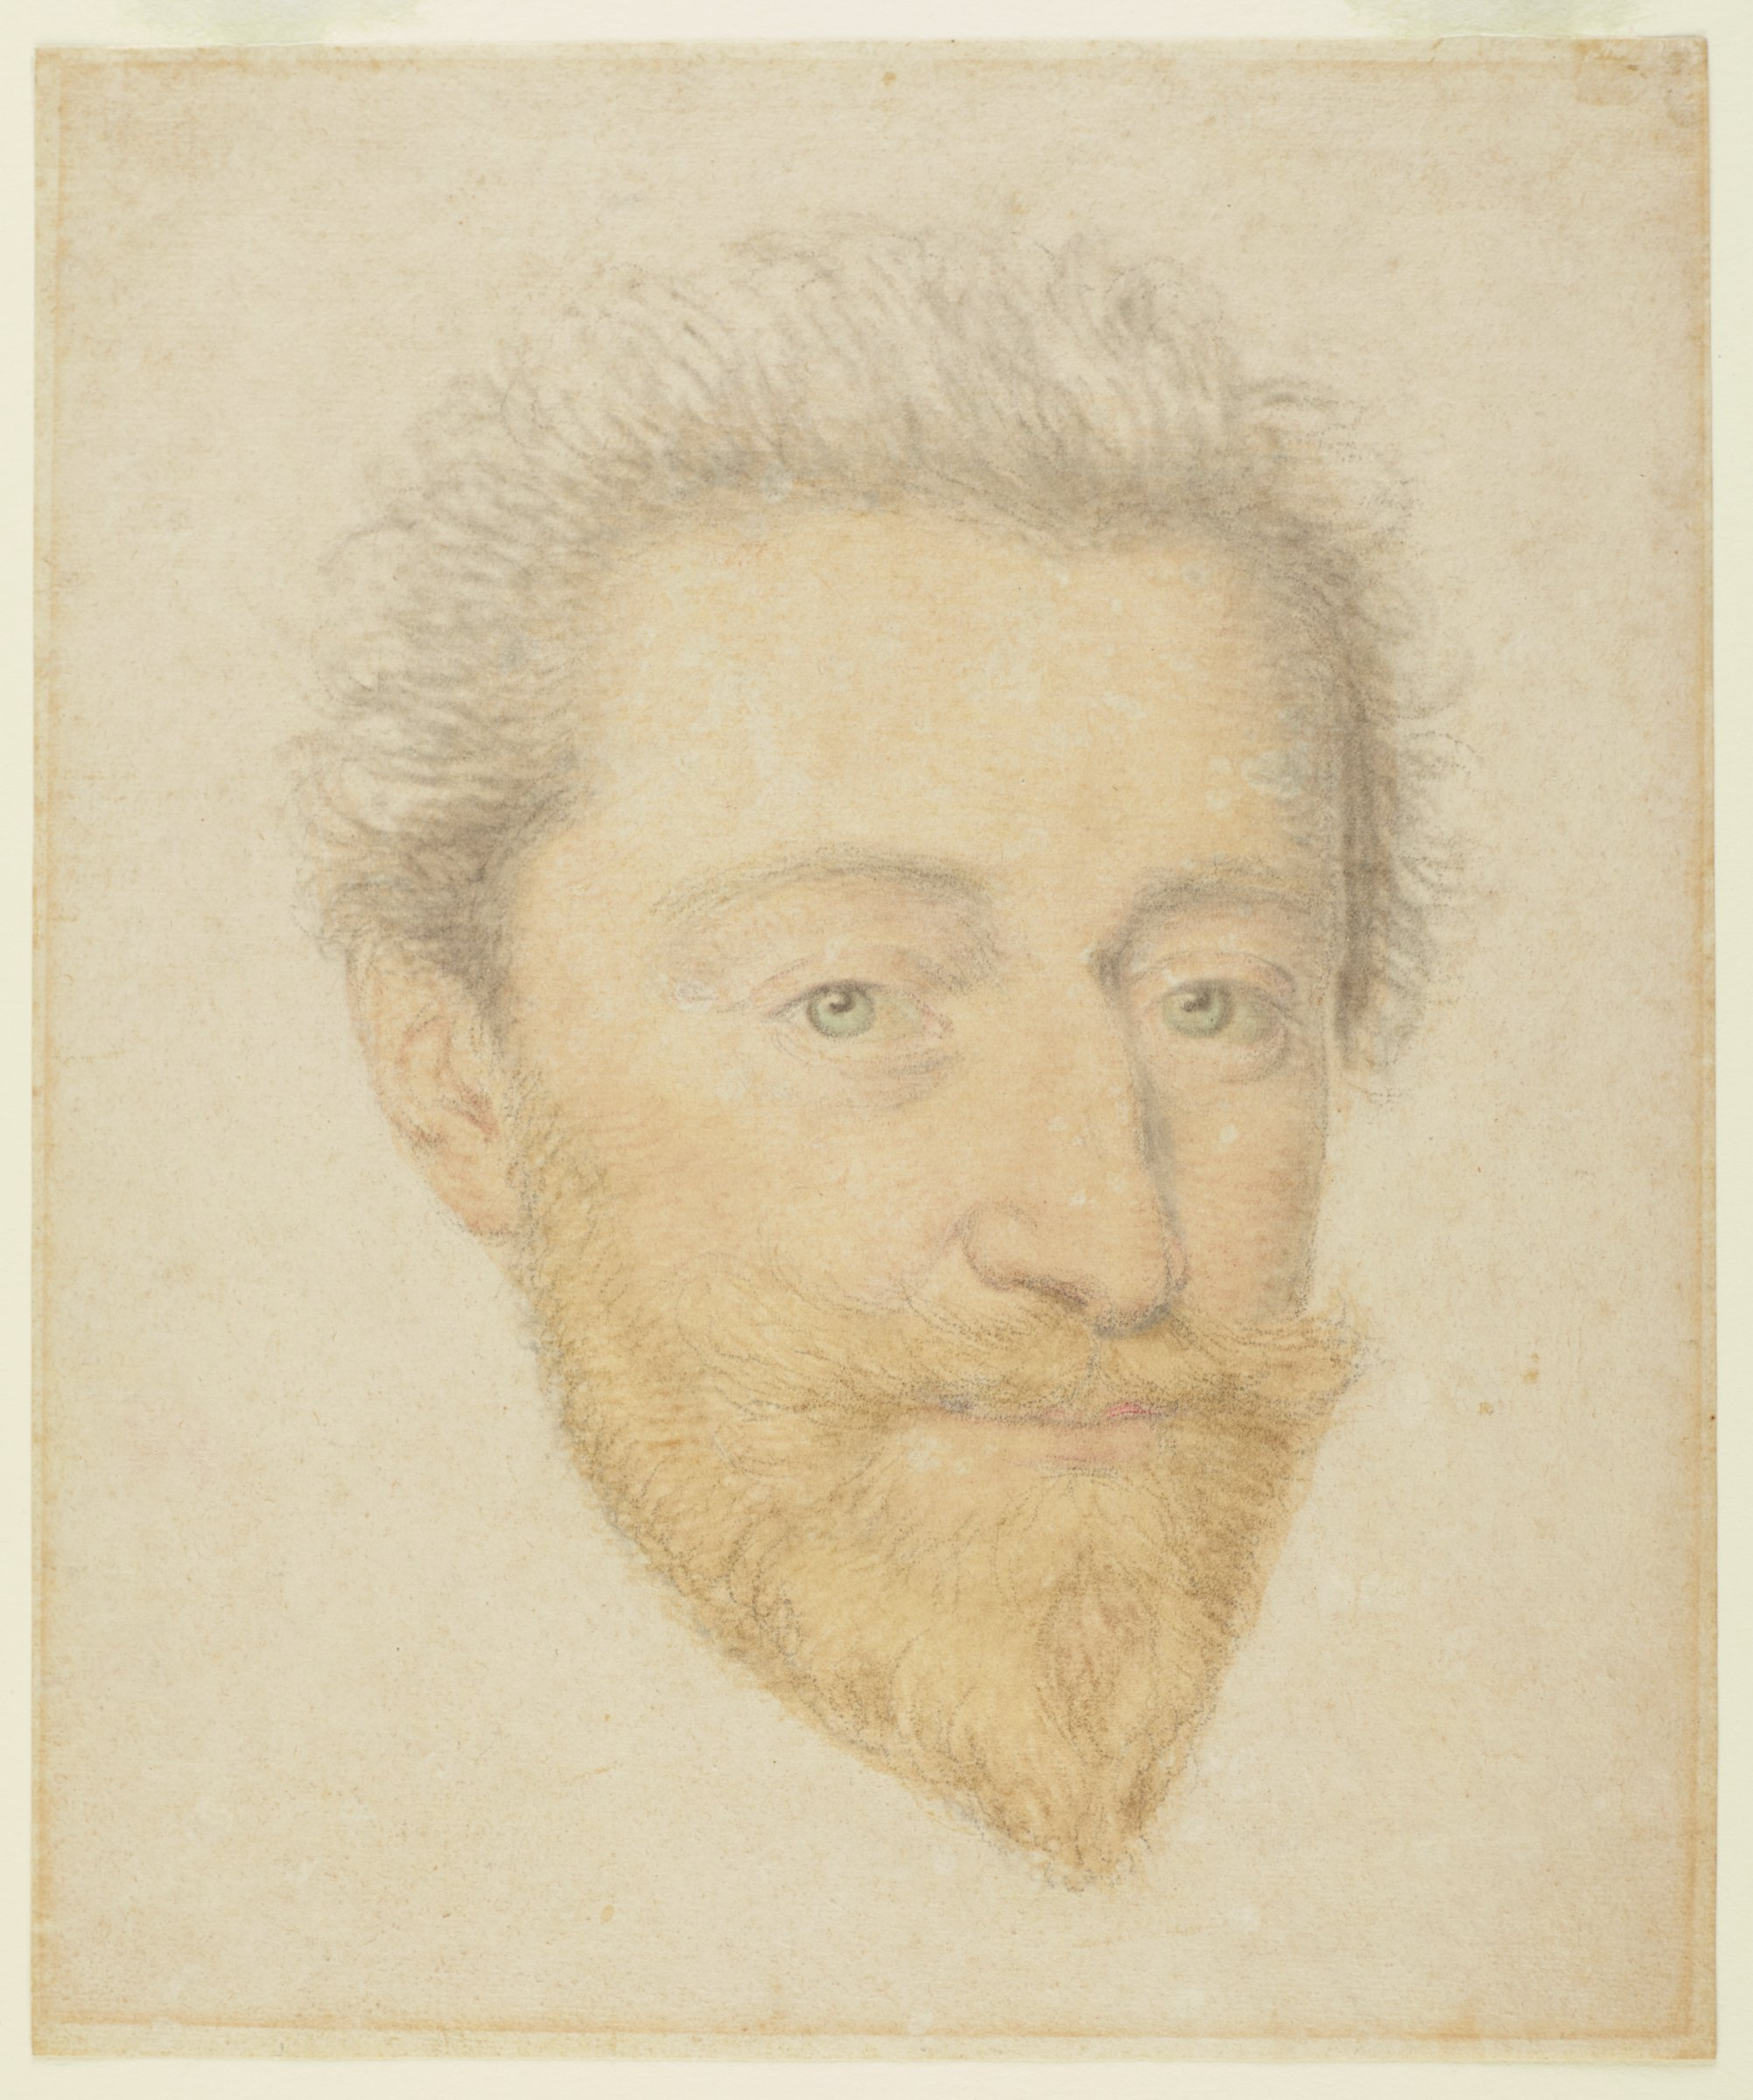 A portrait of a man's face with his hair brushed backwards, blue eyes, and a red pointed beard.